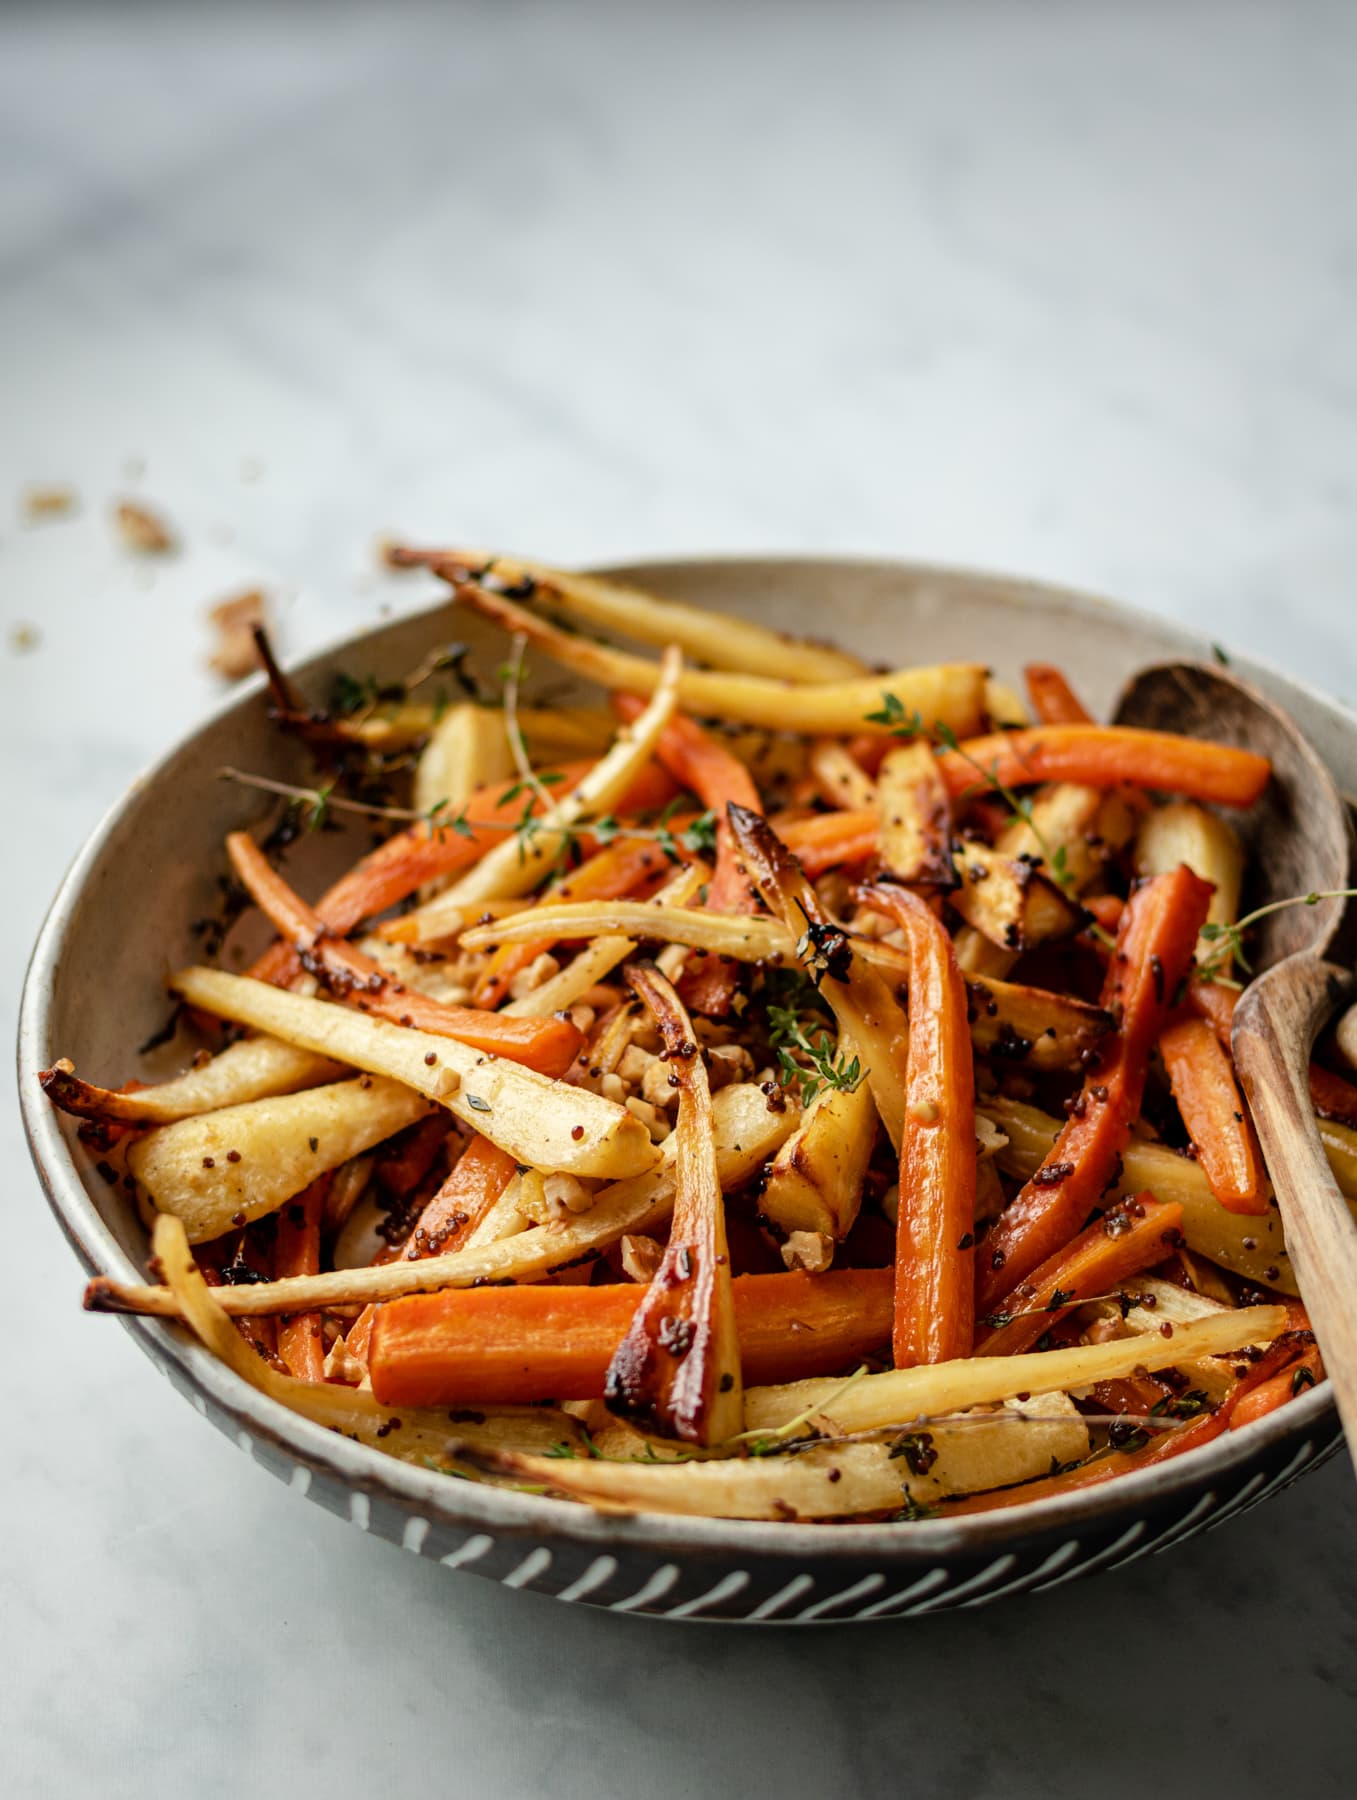 image of serving bowl with roasted carrots and parsnips at 45 degree angle